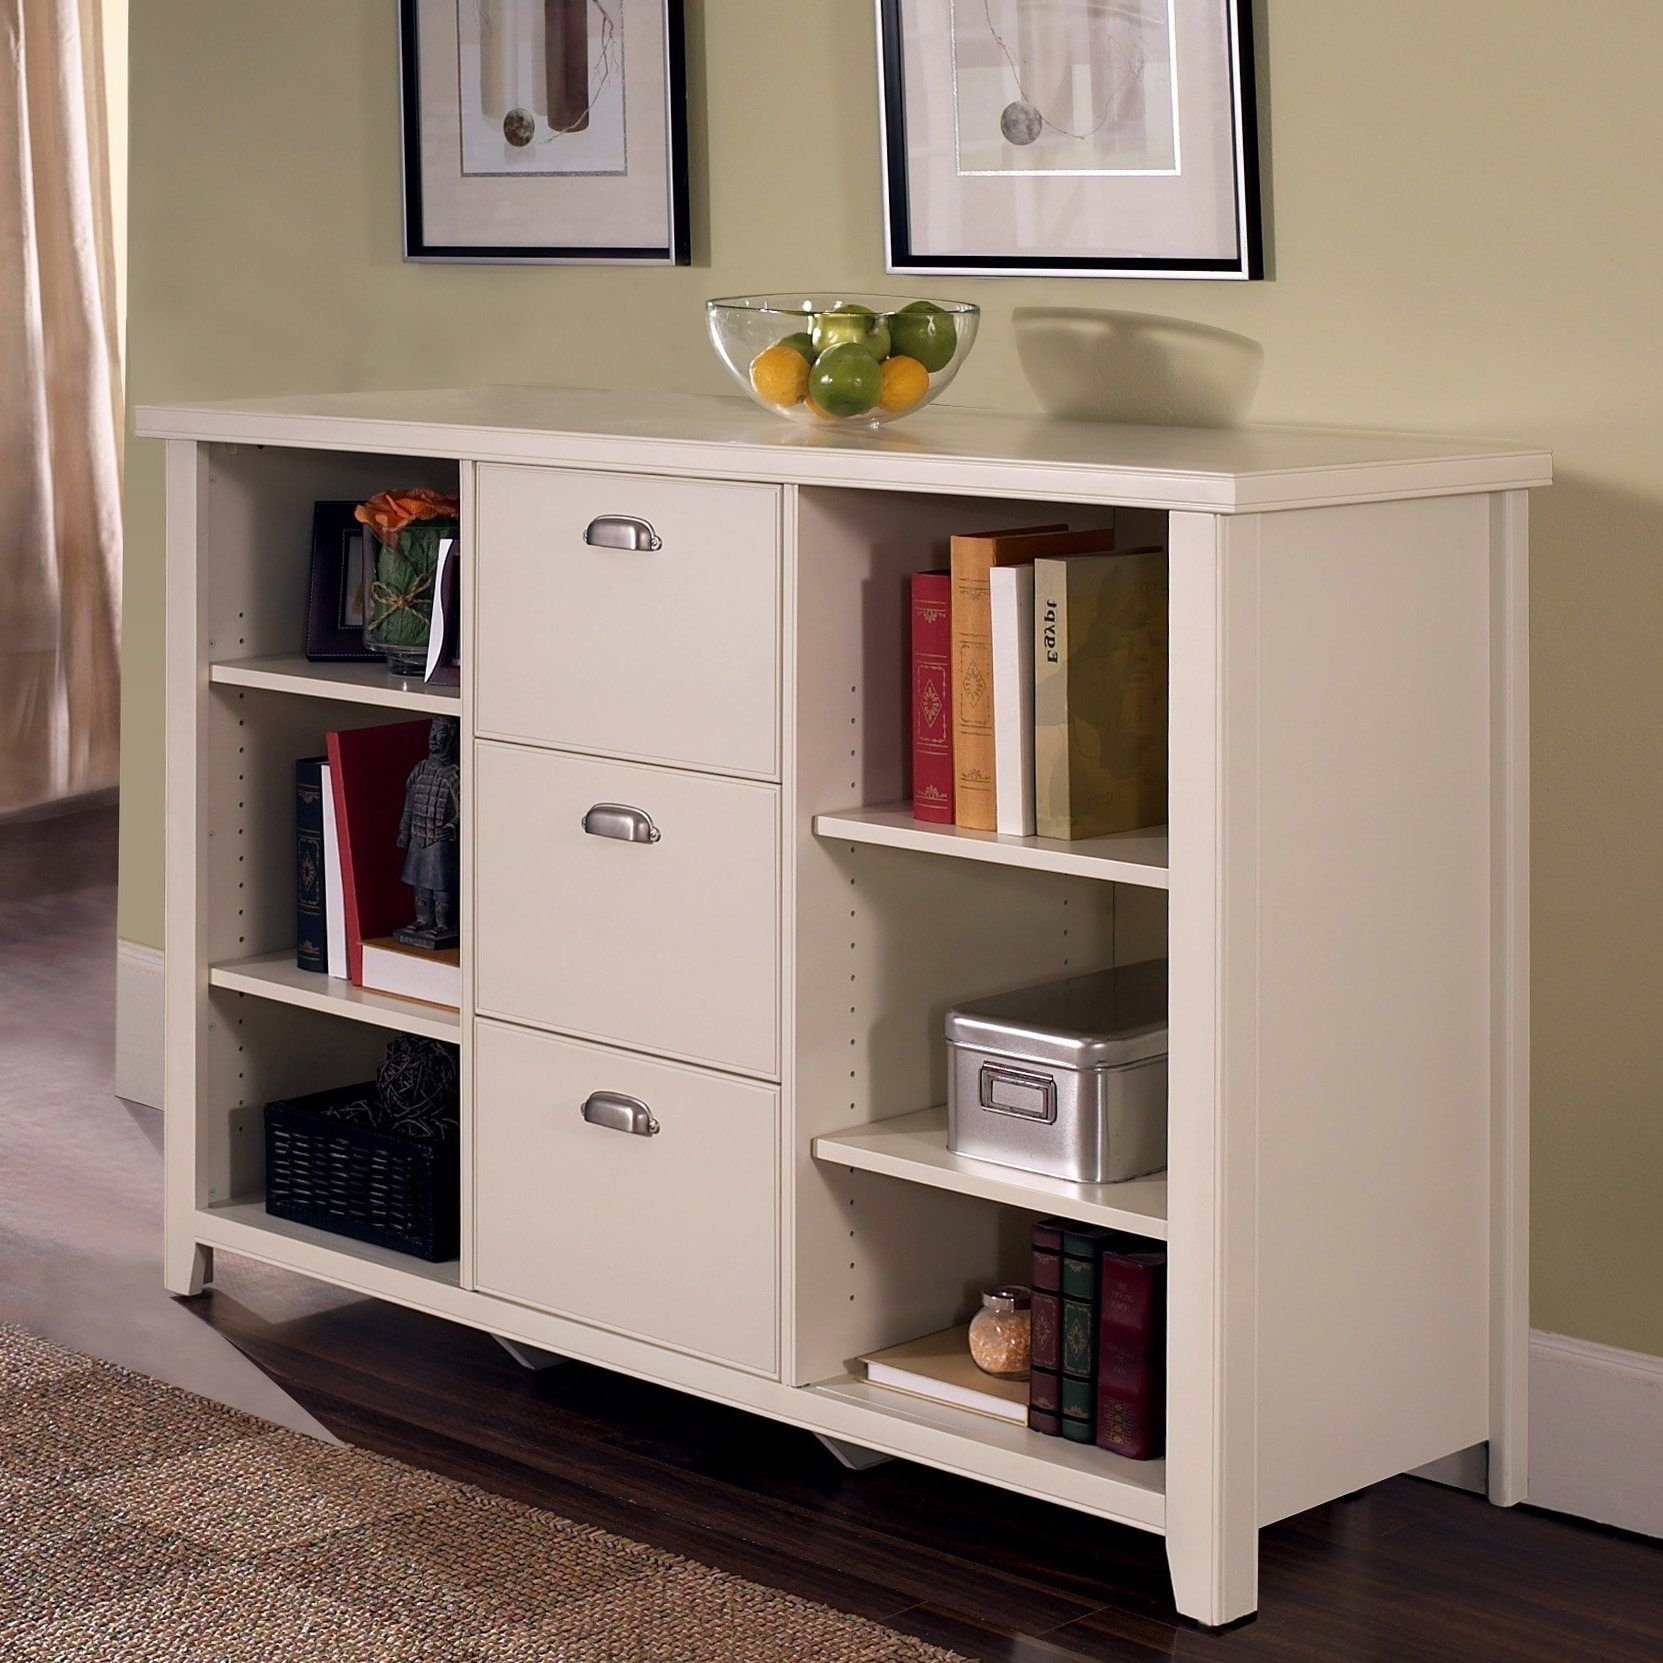 Bookcase File Cabinet Combo Best Paint For Wood Furniture Check More At Http Fiveinchfloppy Com Bookcase Fi Home Office Furniture Martin Furniture Bookcase